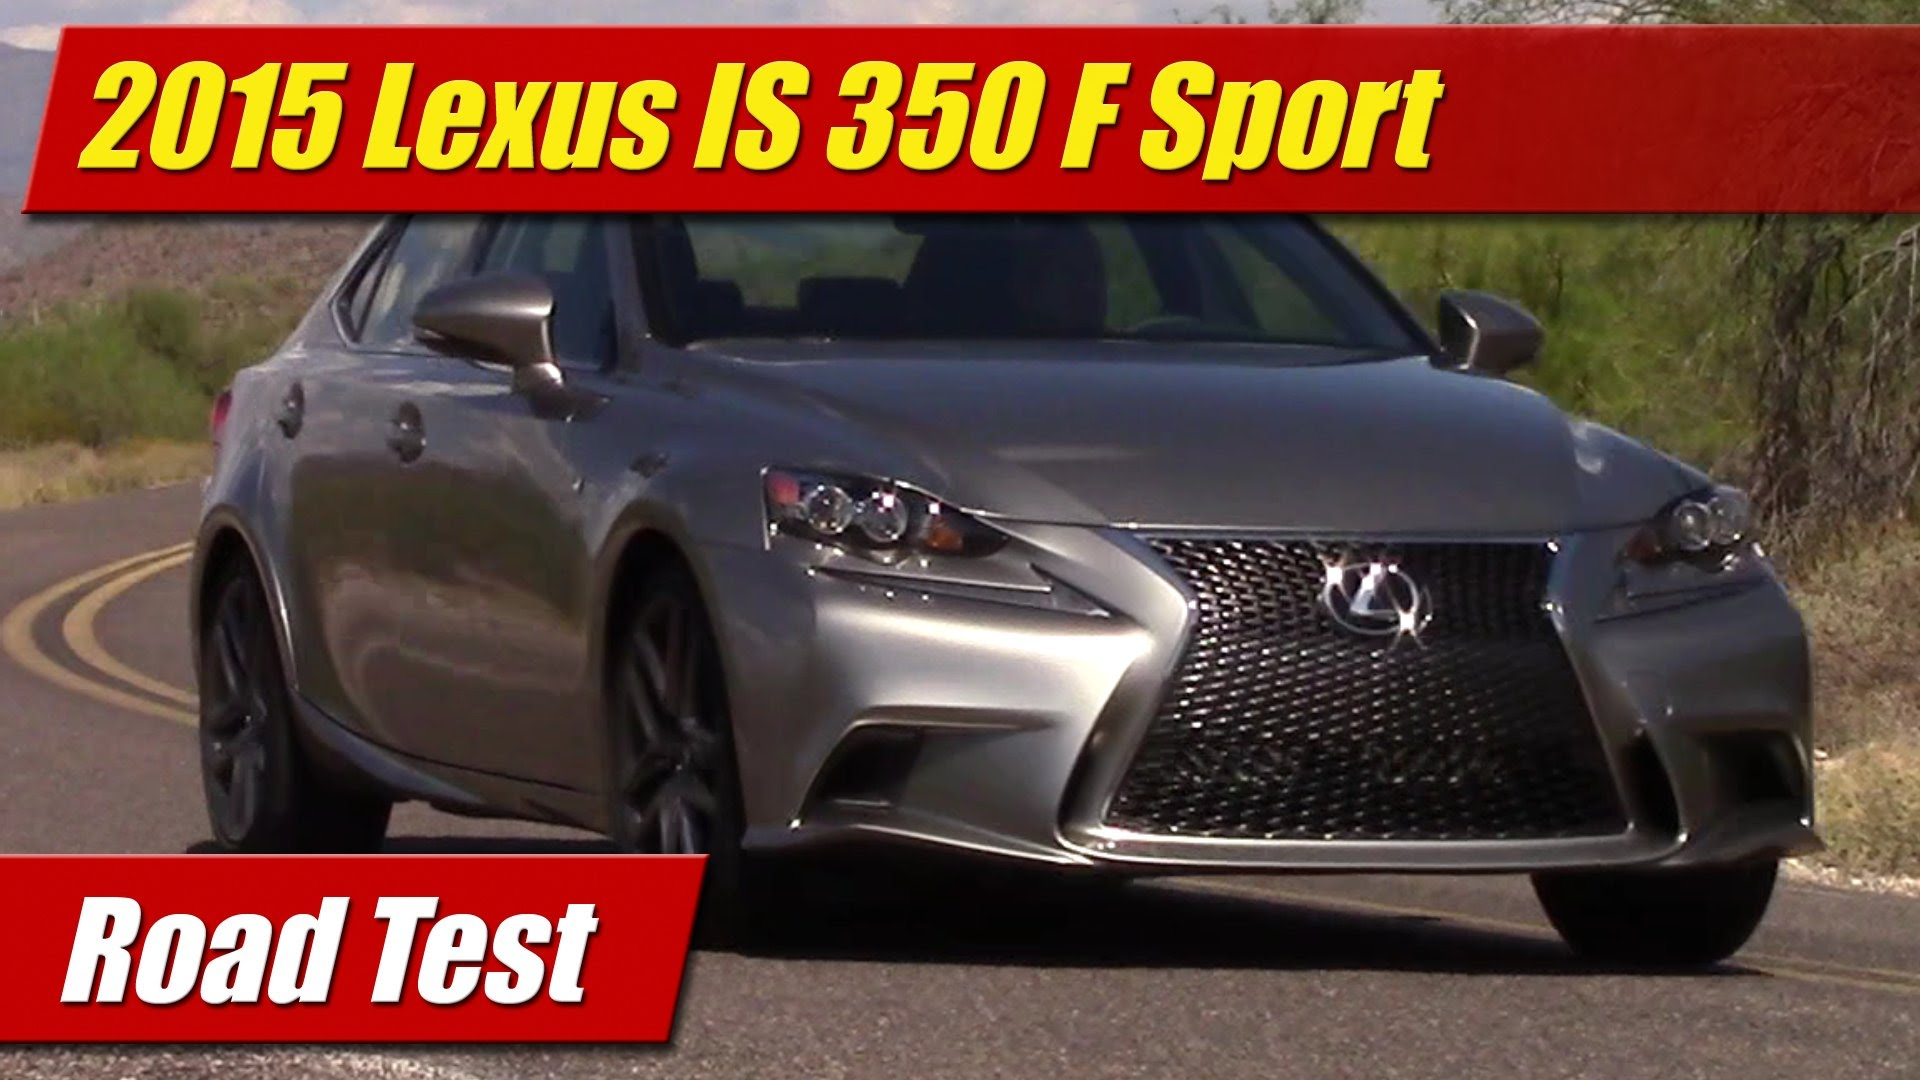 road test 2015 lexus is 350 f sport testdriven tv. Black Bedroom Furniture Sets. Home Design Ideas